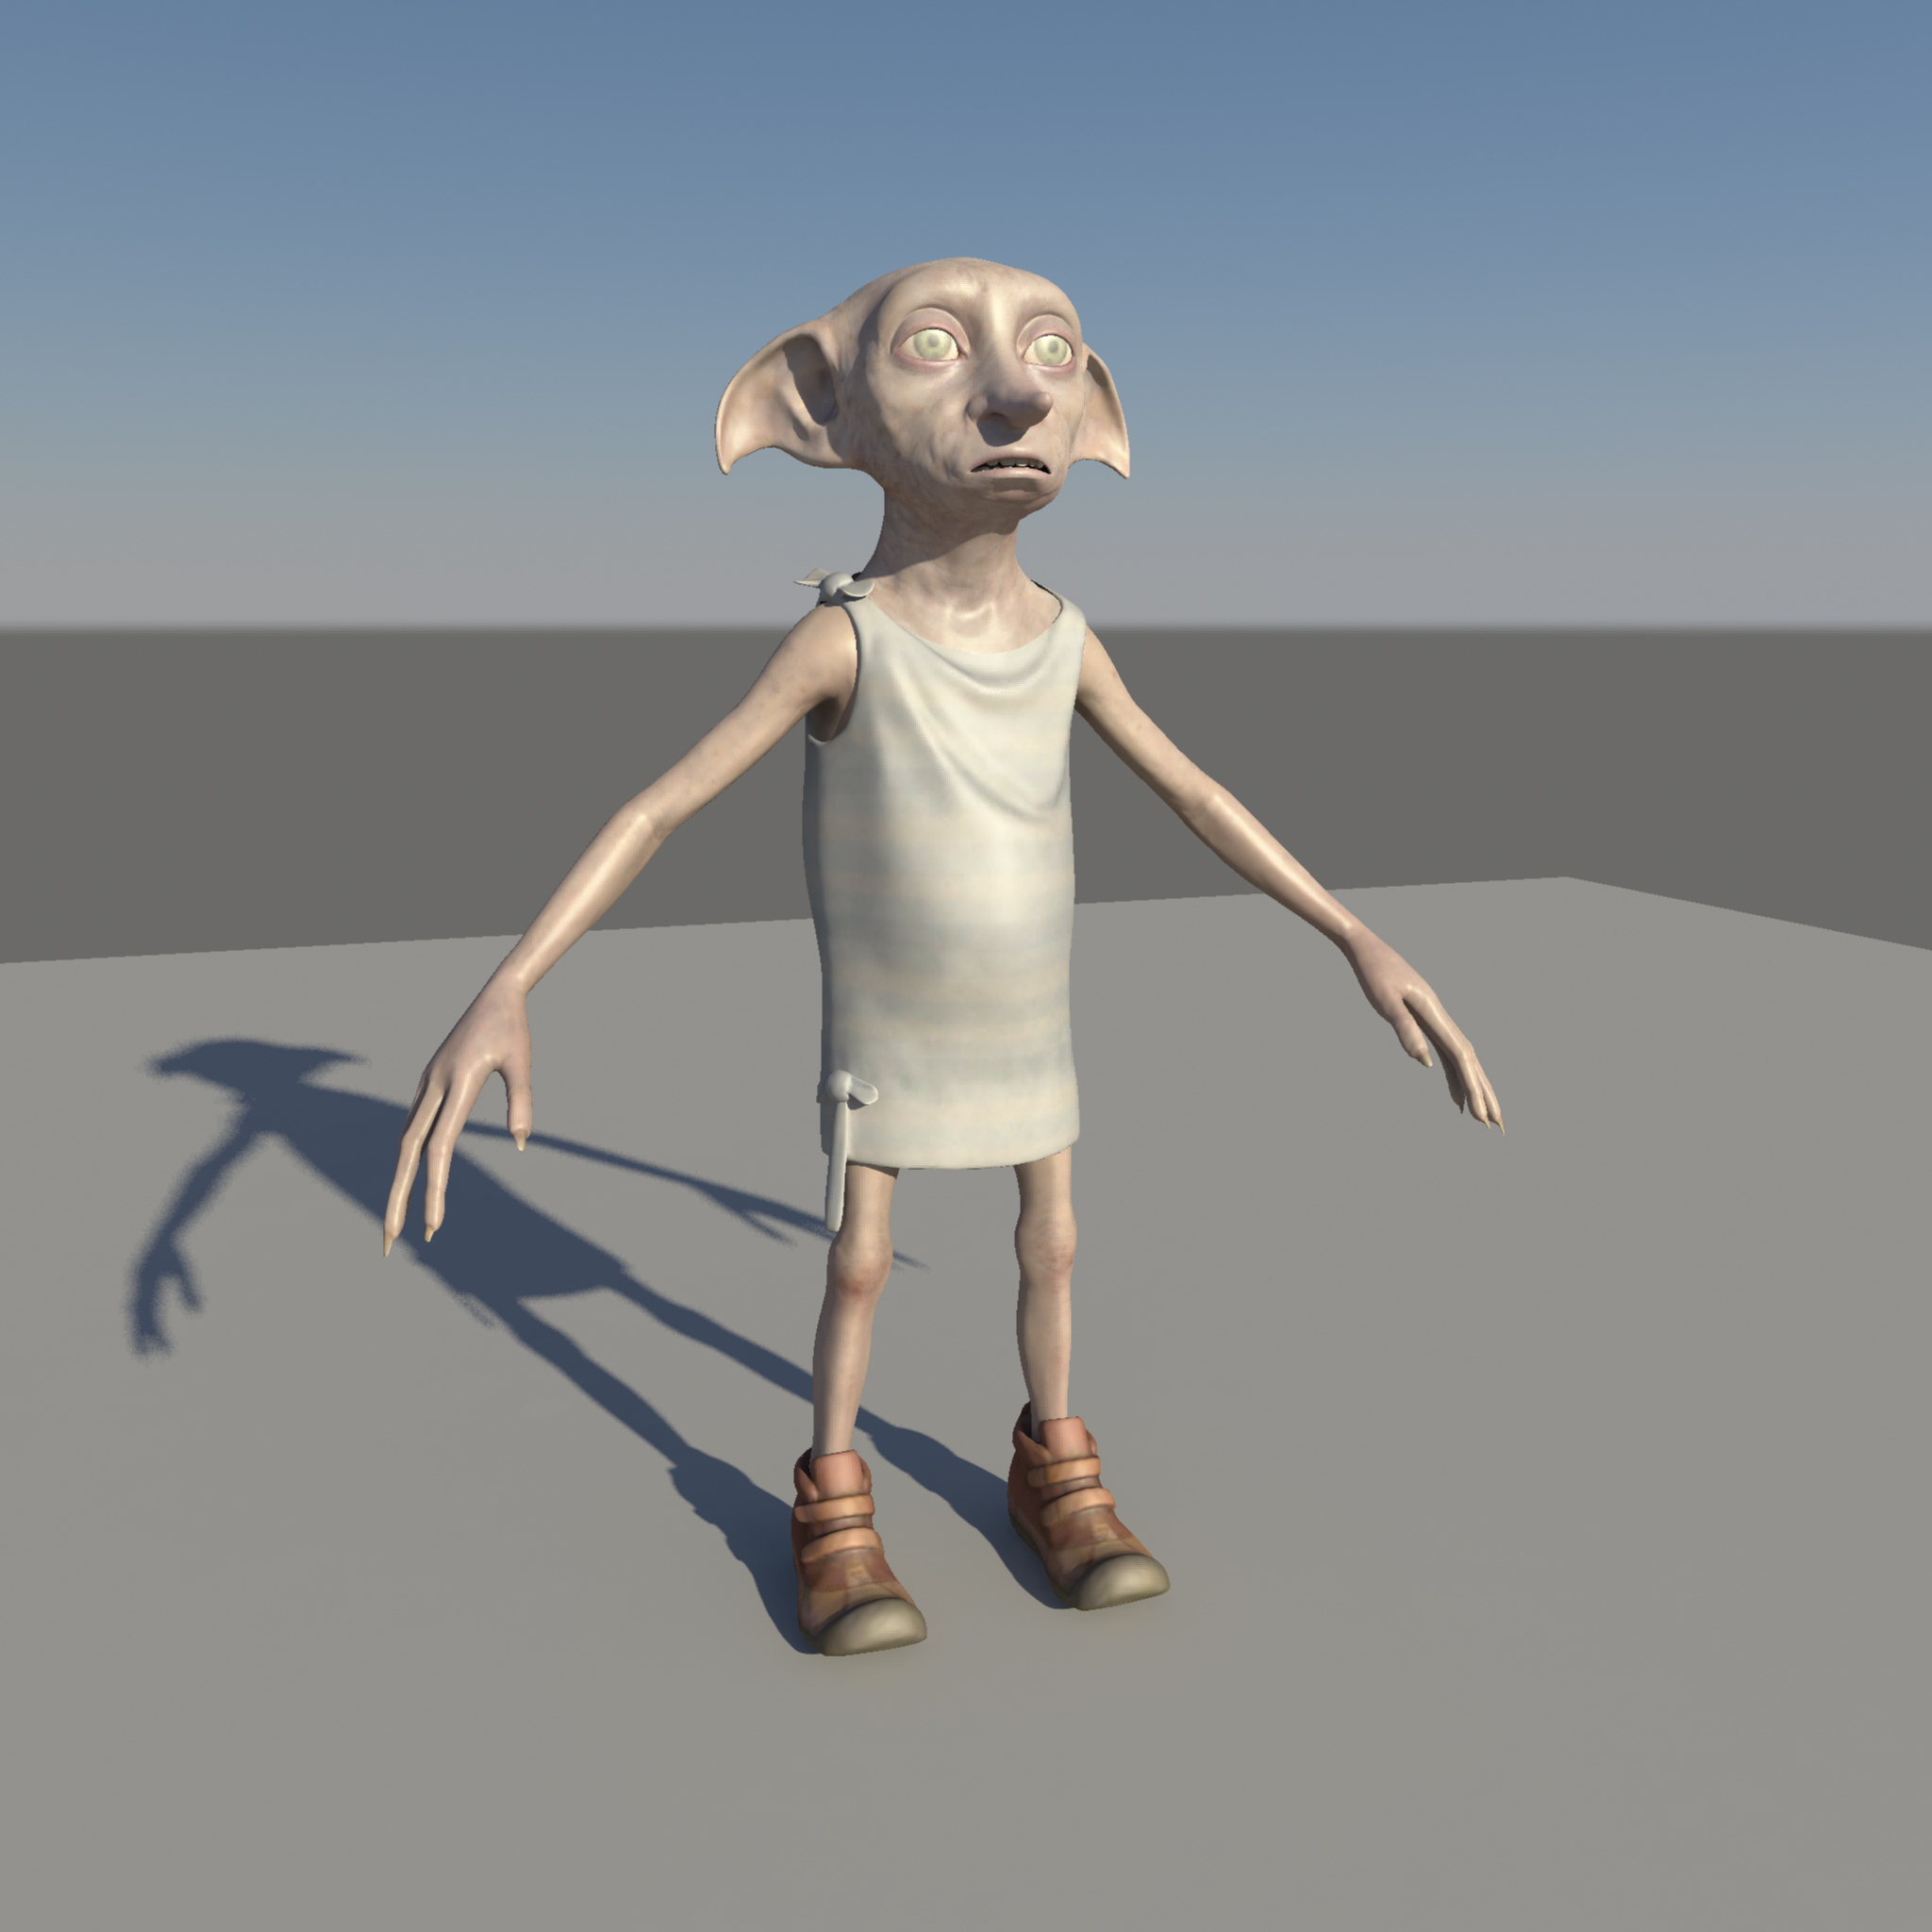 dobby 3d model le do thoil